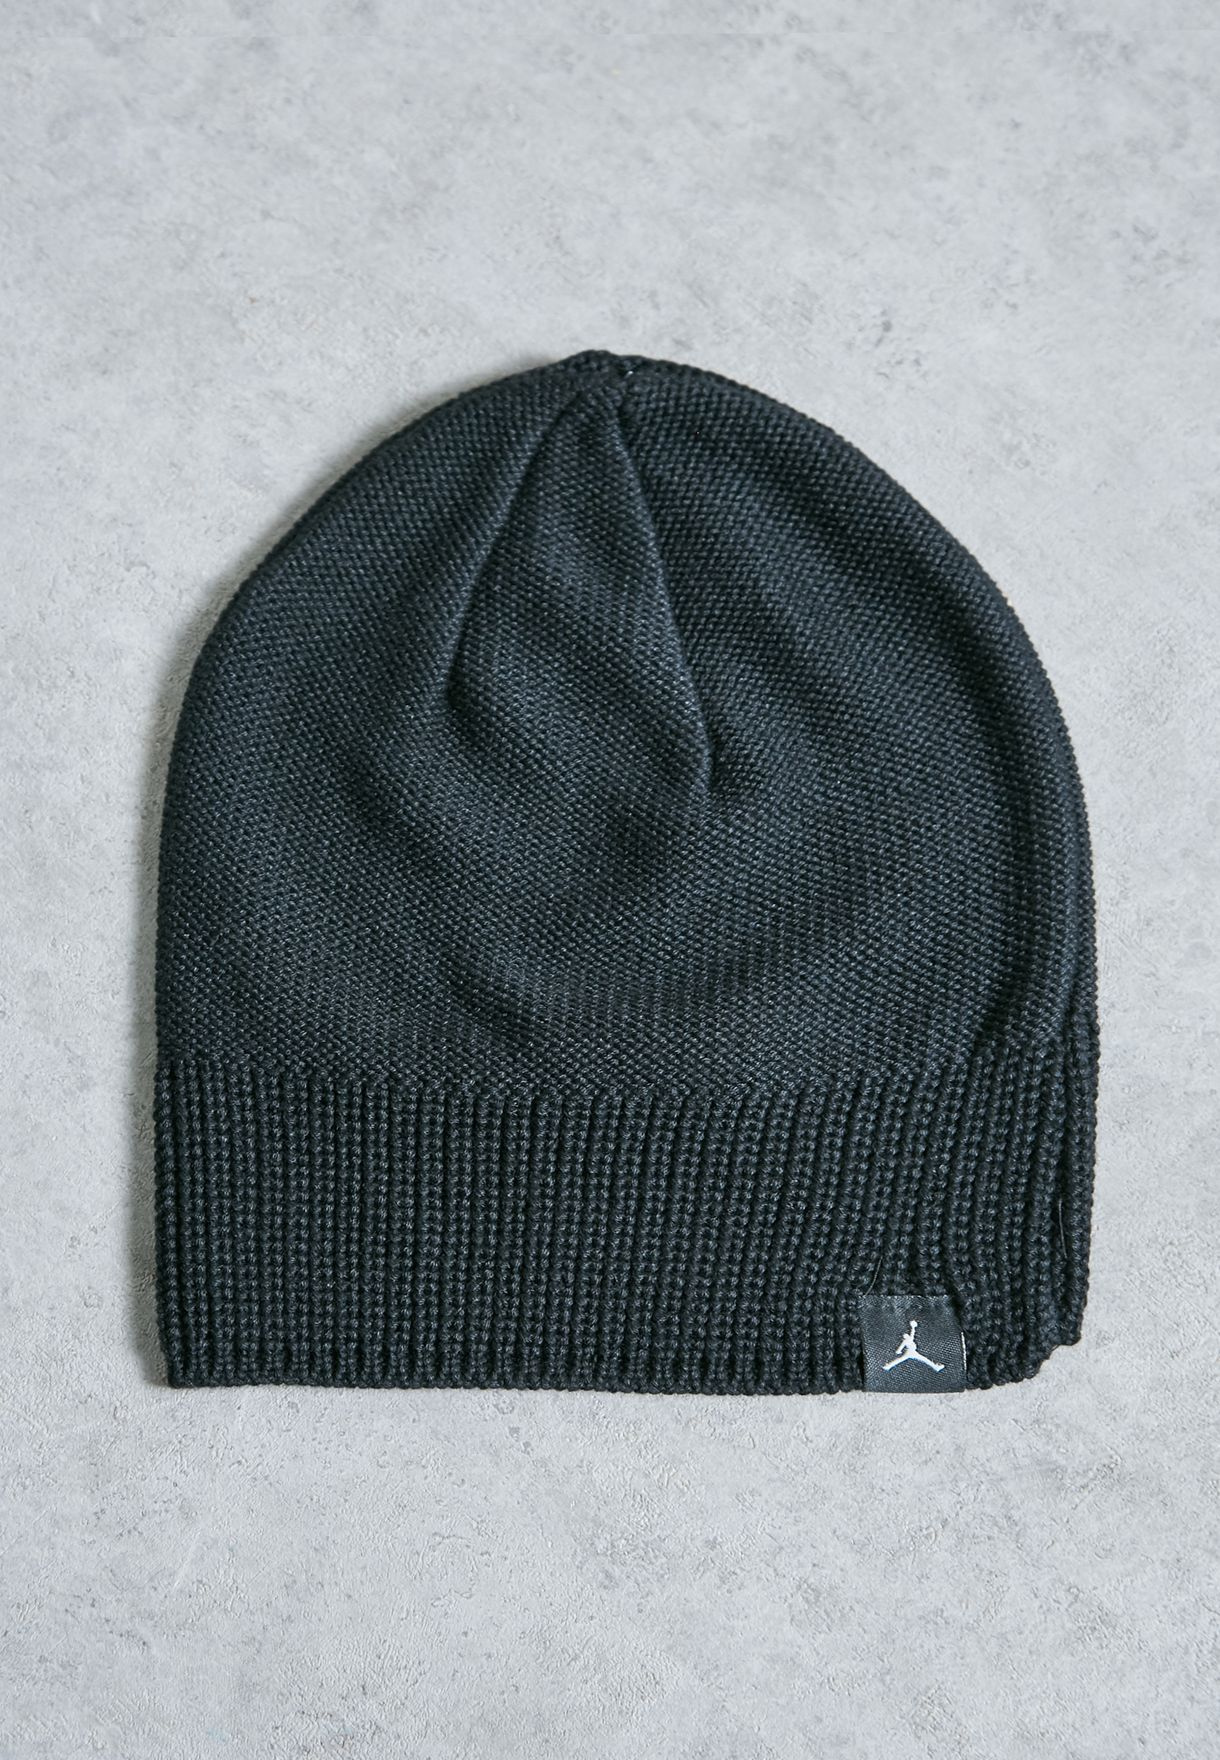 62c3e1fc165 Shop Nike black Jordan Jumpman Beanie 801769-010 for Men in UAE ...